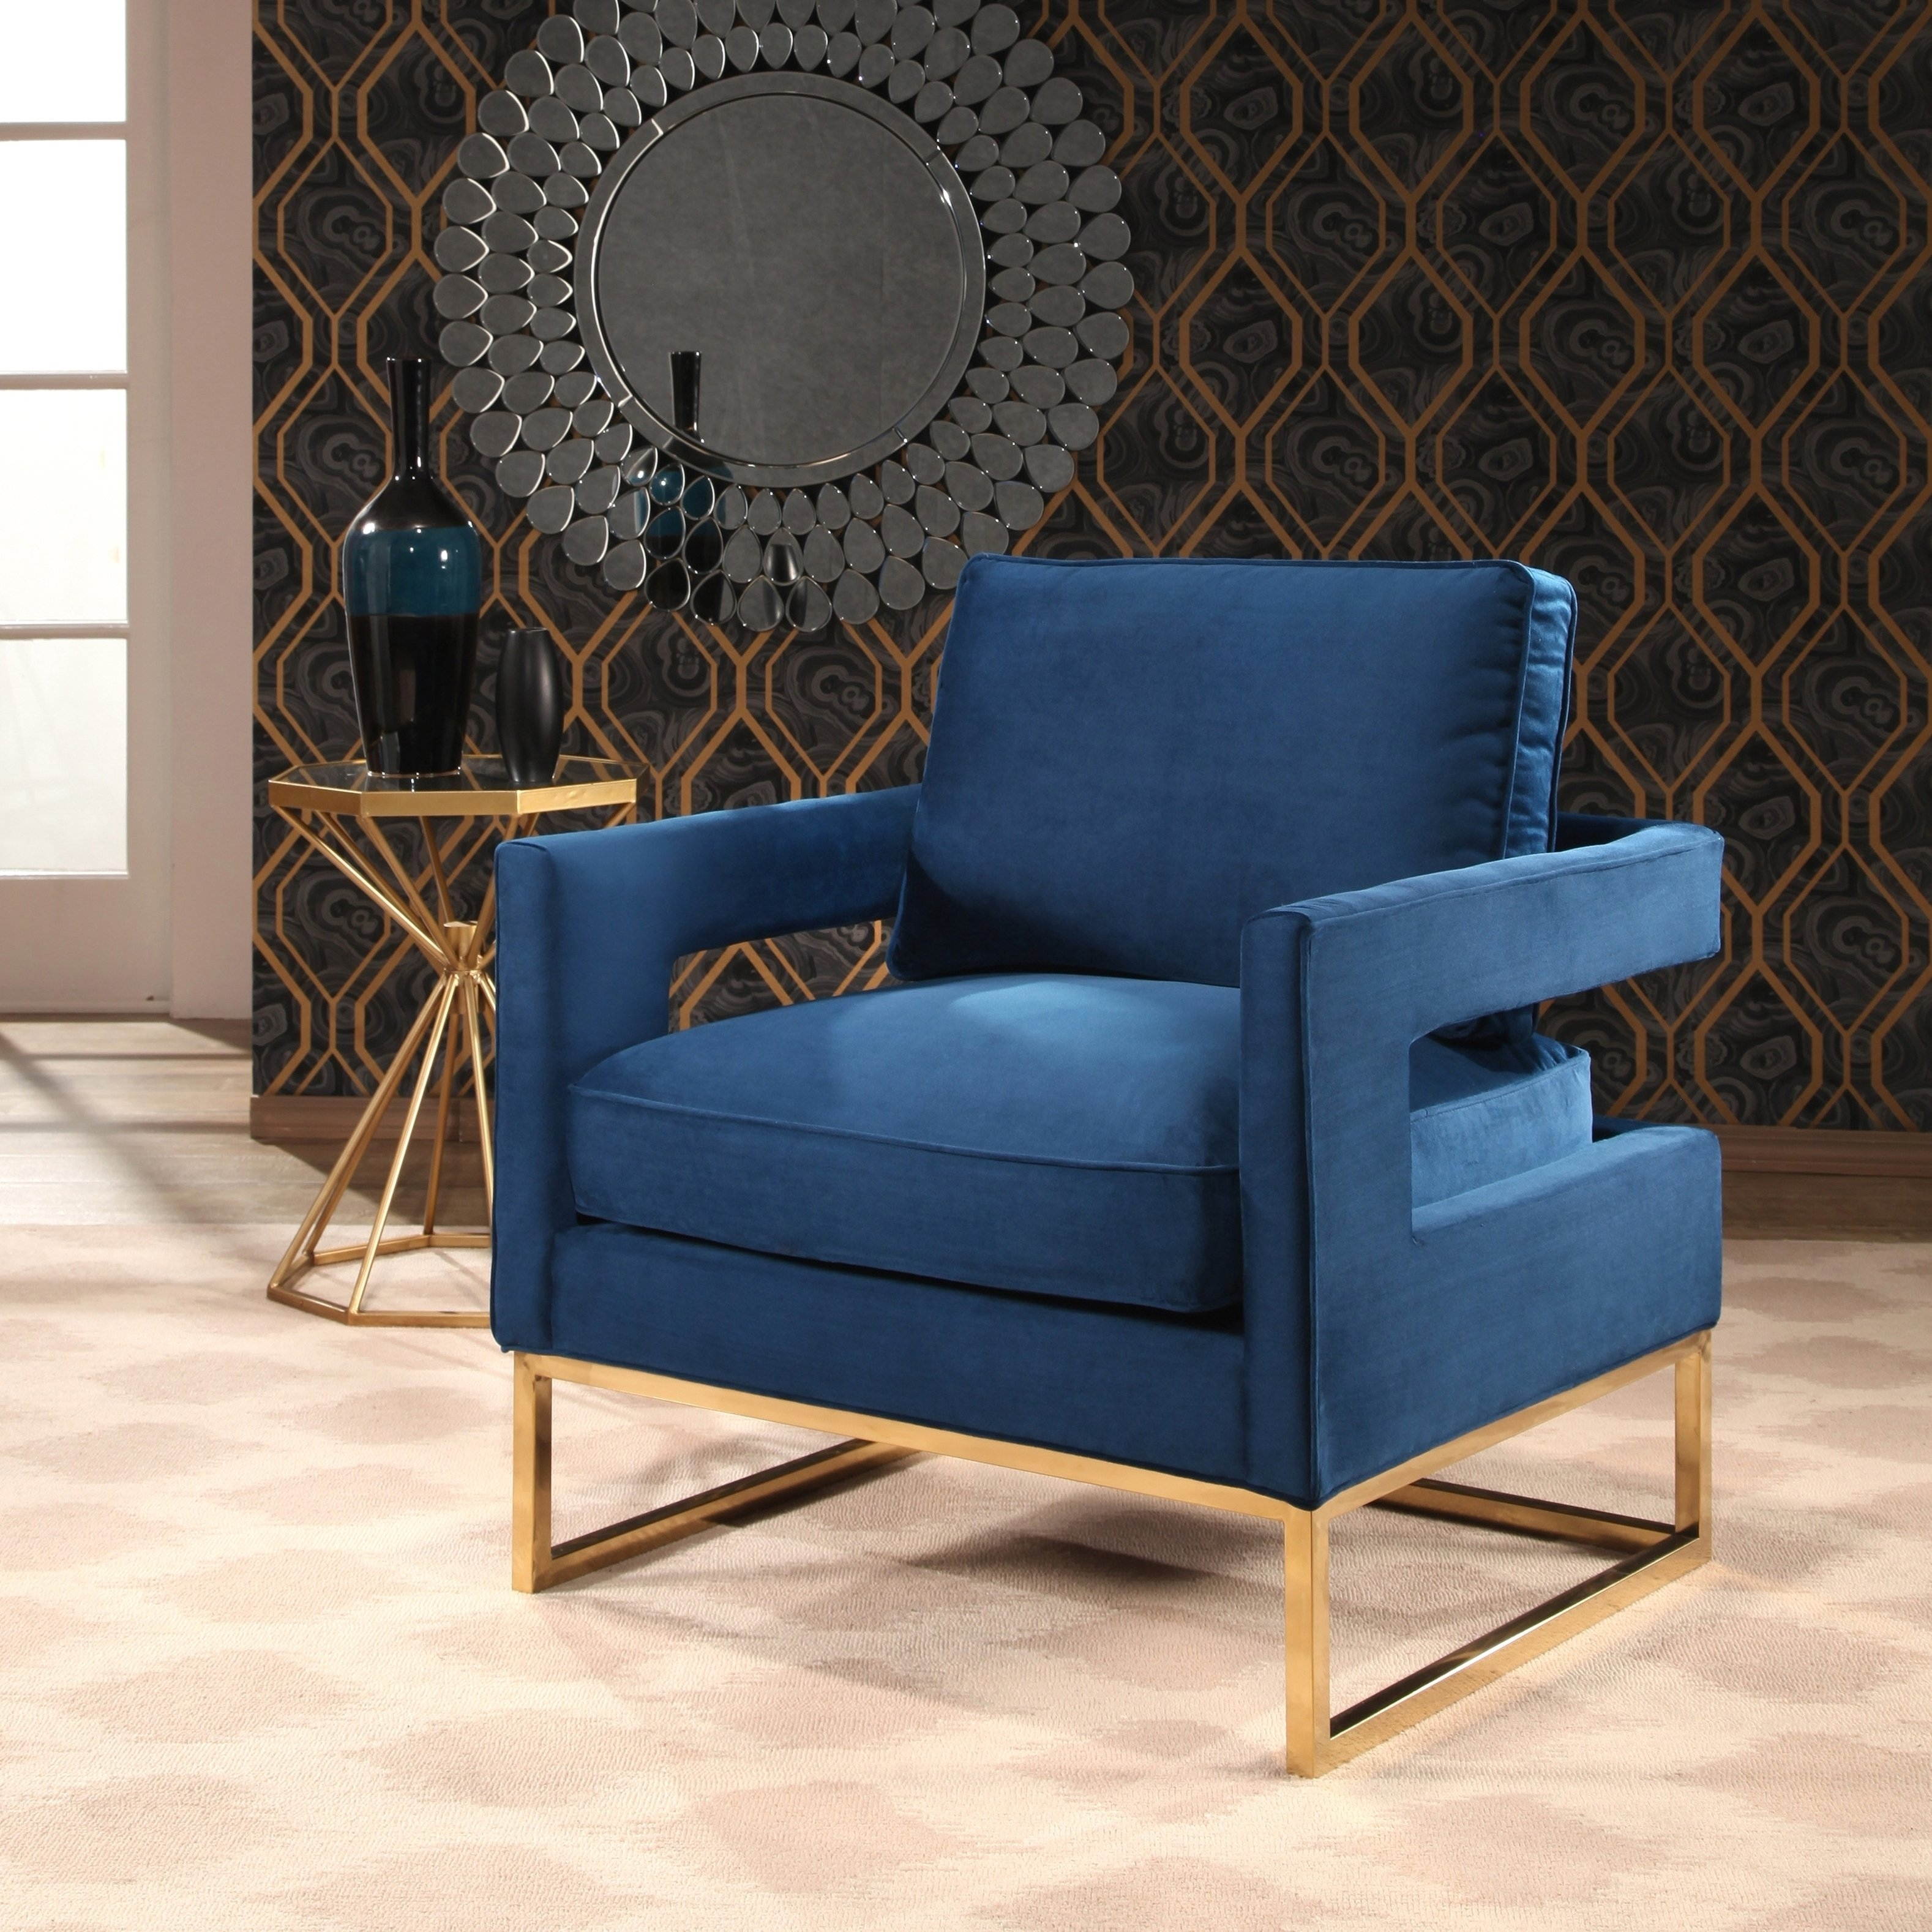 Nautical Blue Side Chairs Inside Best And Newest Buy Living Room Chairs Online At Overstock (#8 of 20)